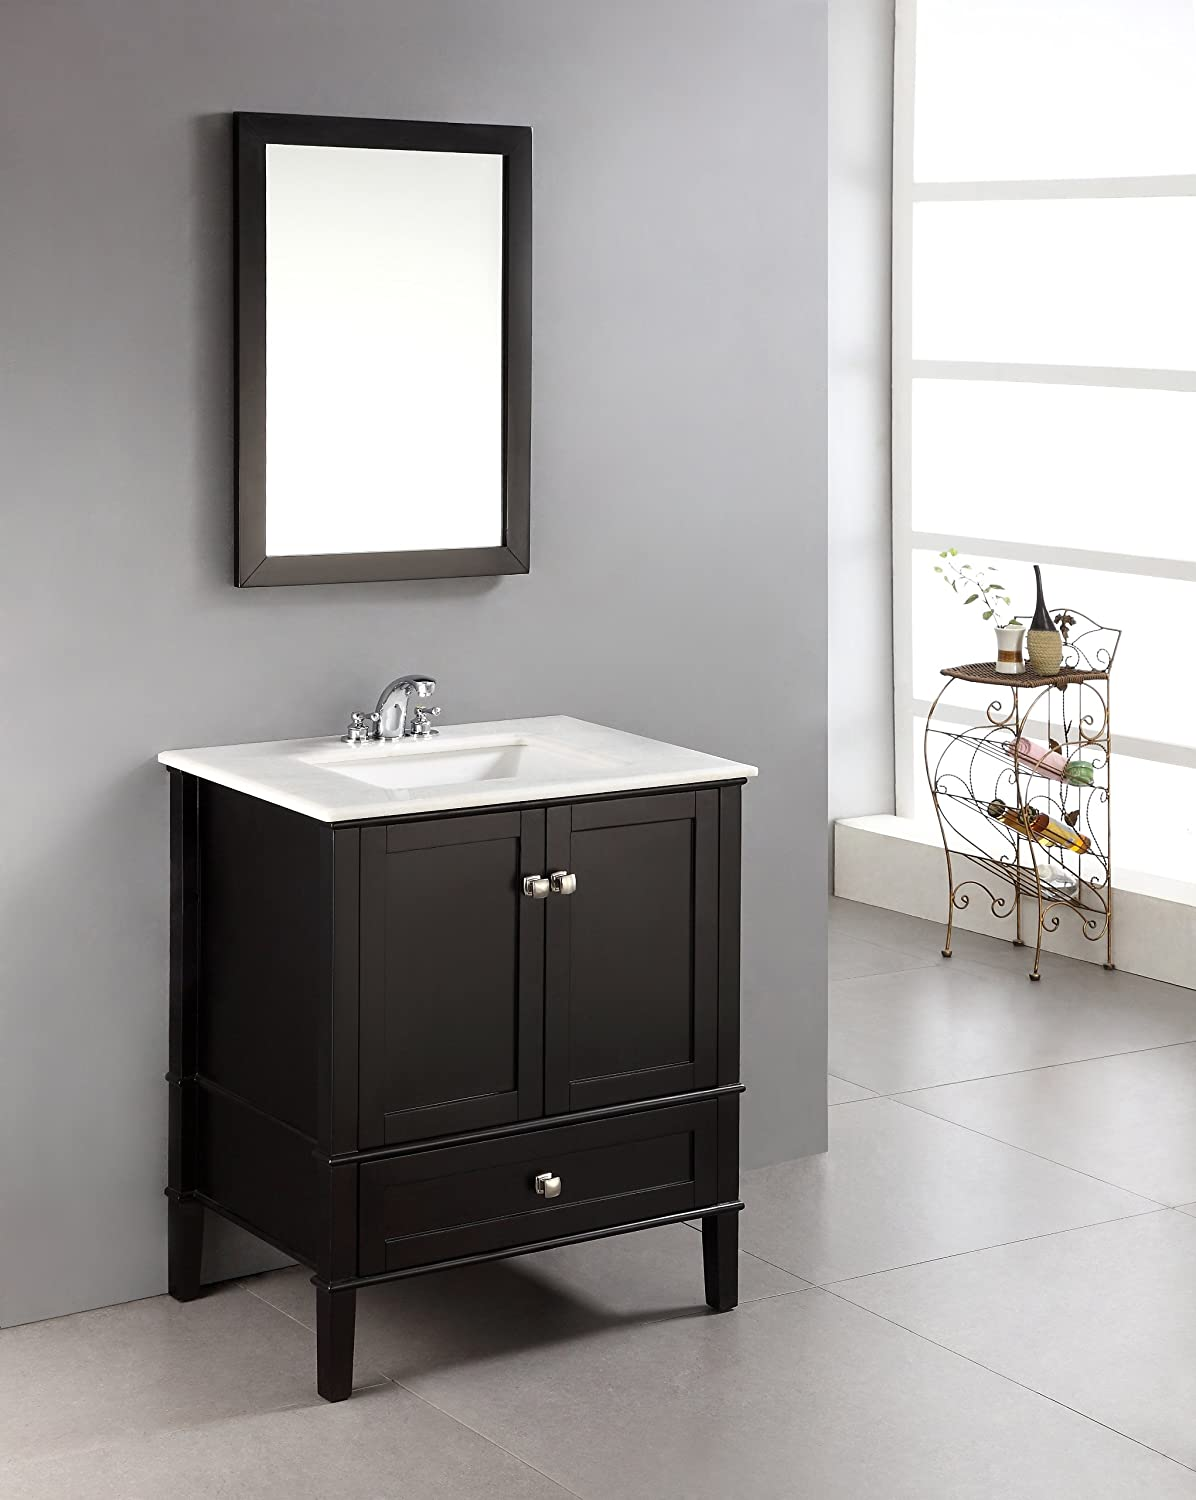 how view gallery top integrate dresser black vanity bathroom and in into to with the overdoing it vanities without a marble mirror freestanding